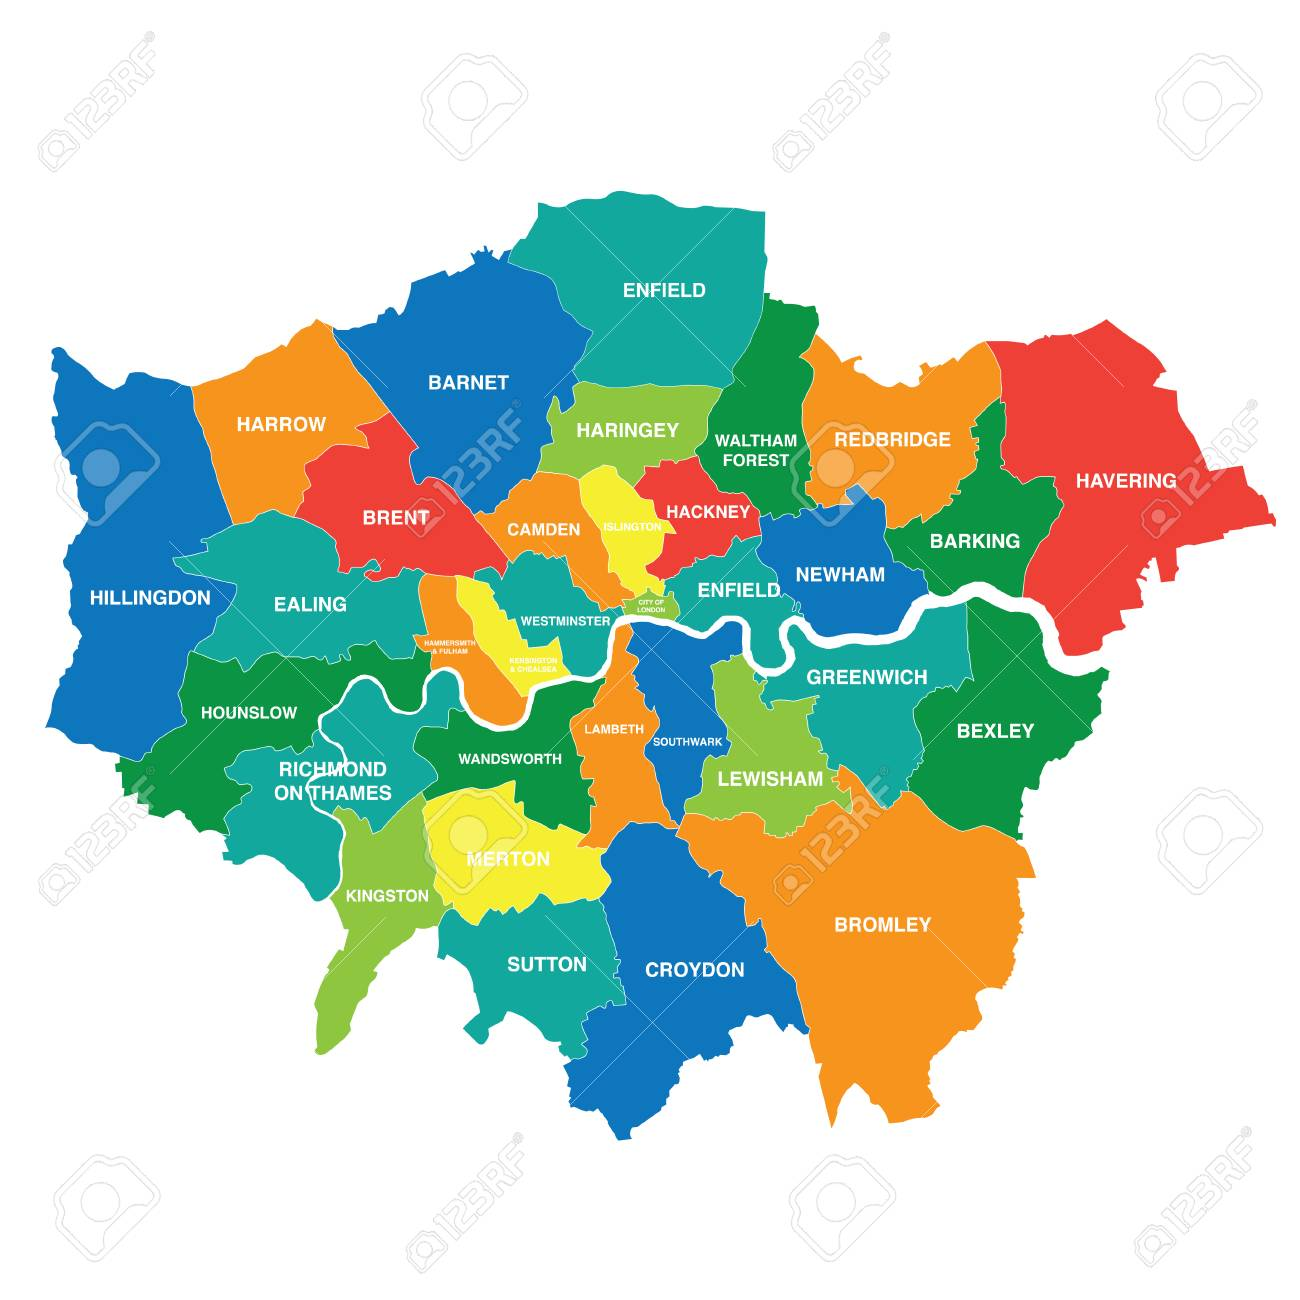 Greater London Map Showing All Boroughs Royalty Free Cliparts